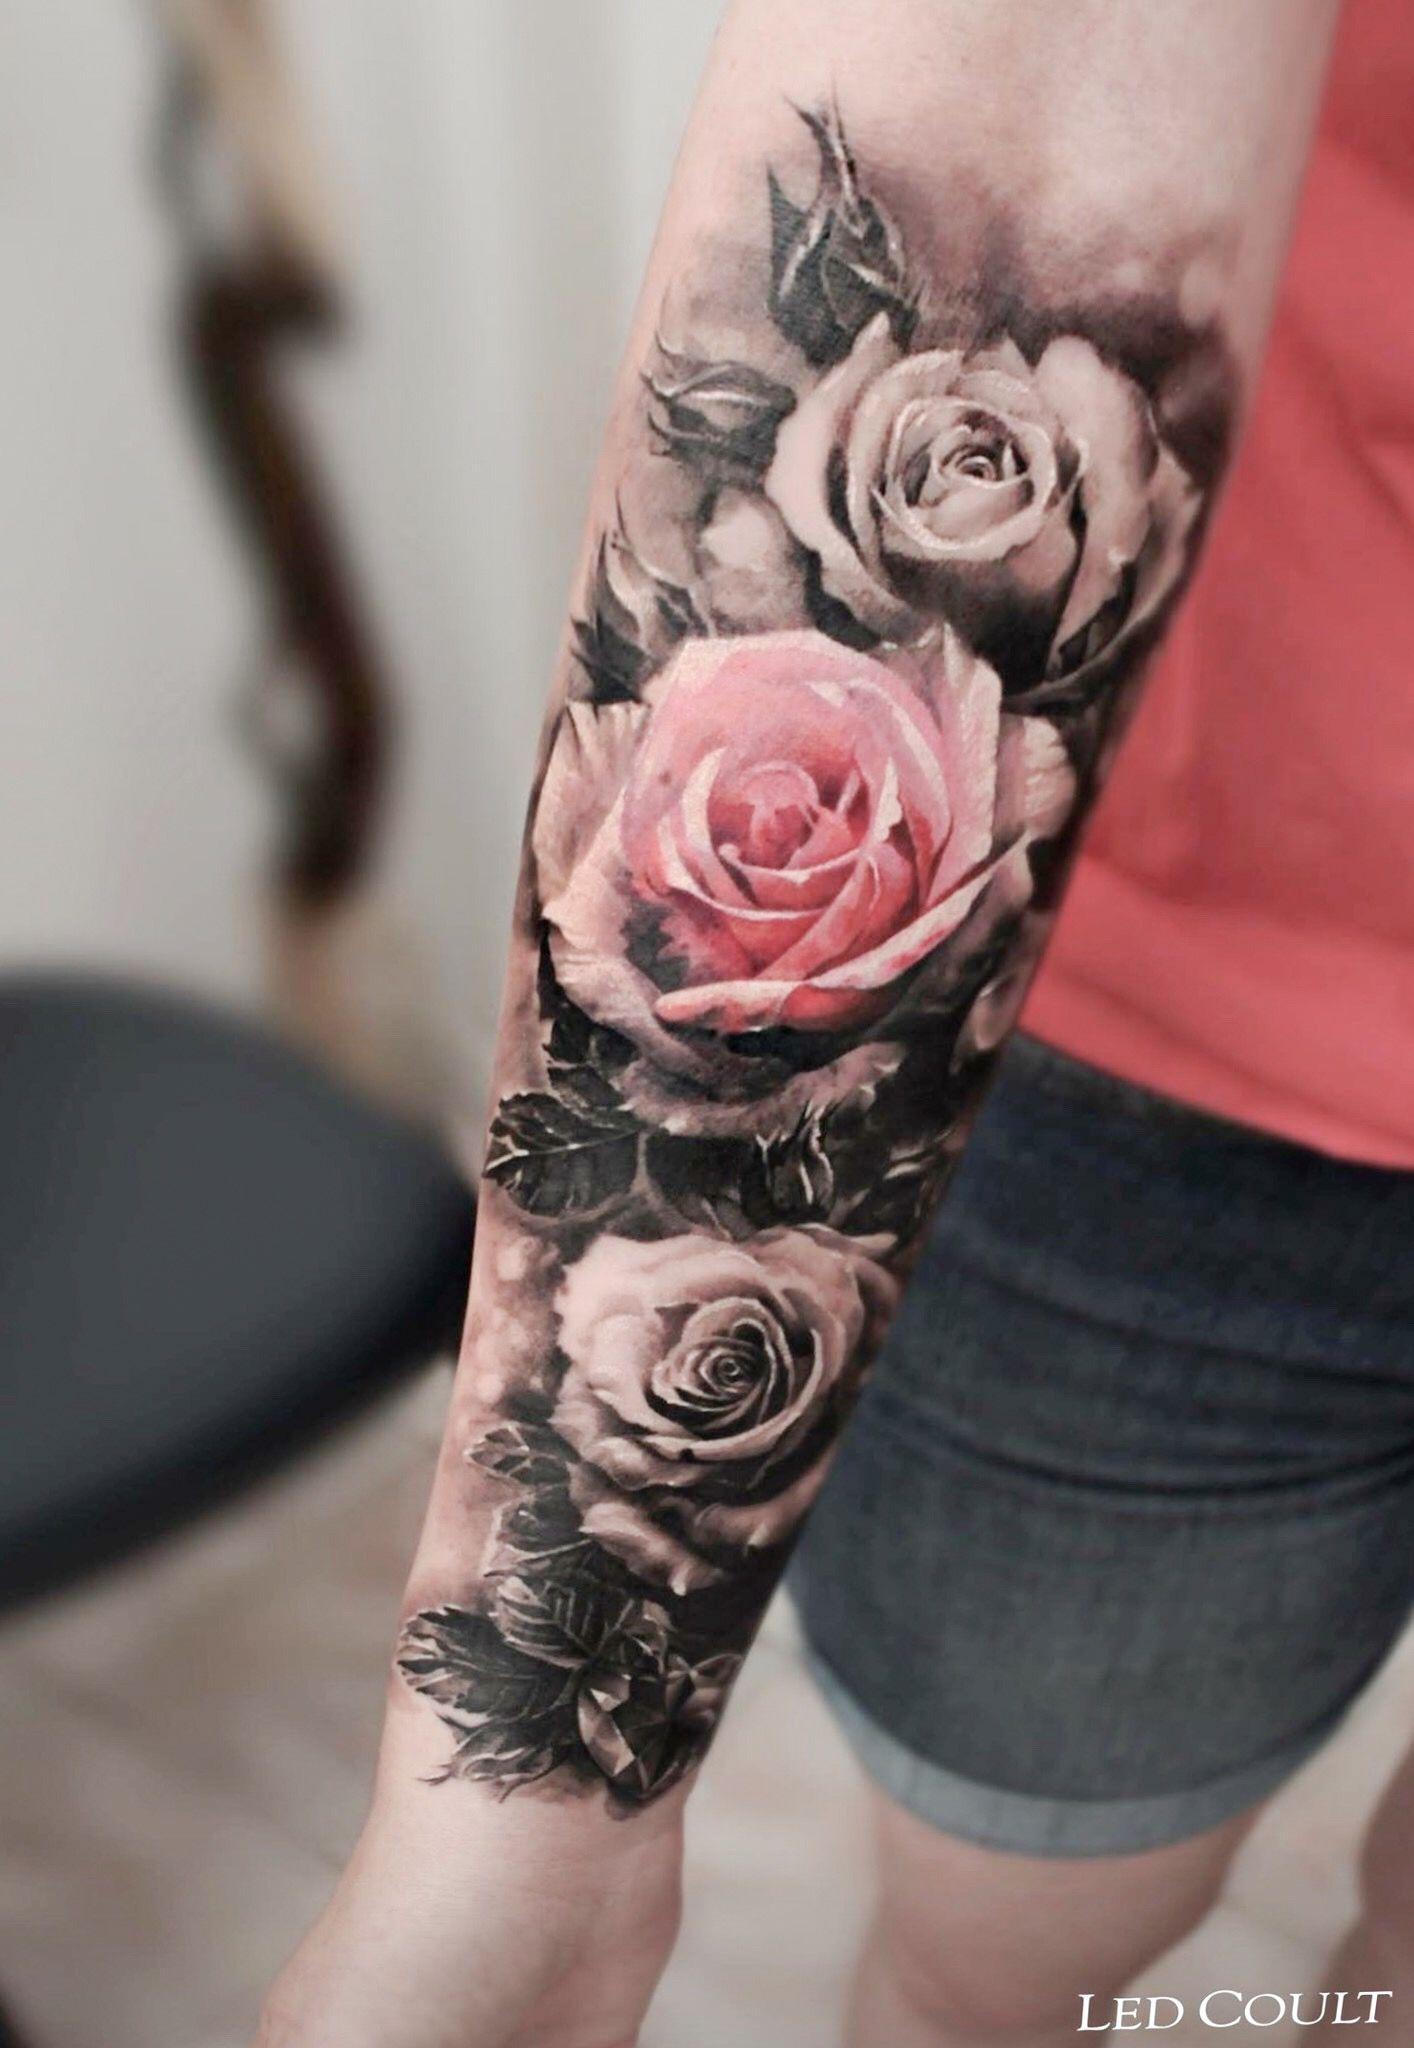 Нσυѕтσиqυєєивяι♛♚ Tattoos Tattoos Sleeve Tattoos Ideas And Designs